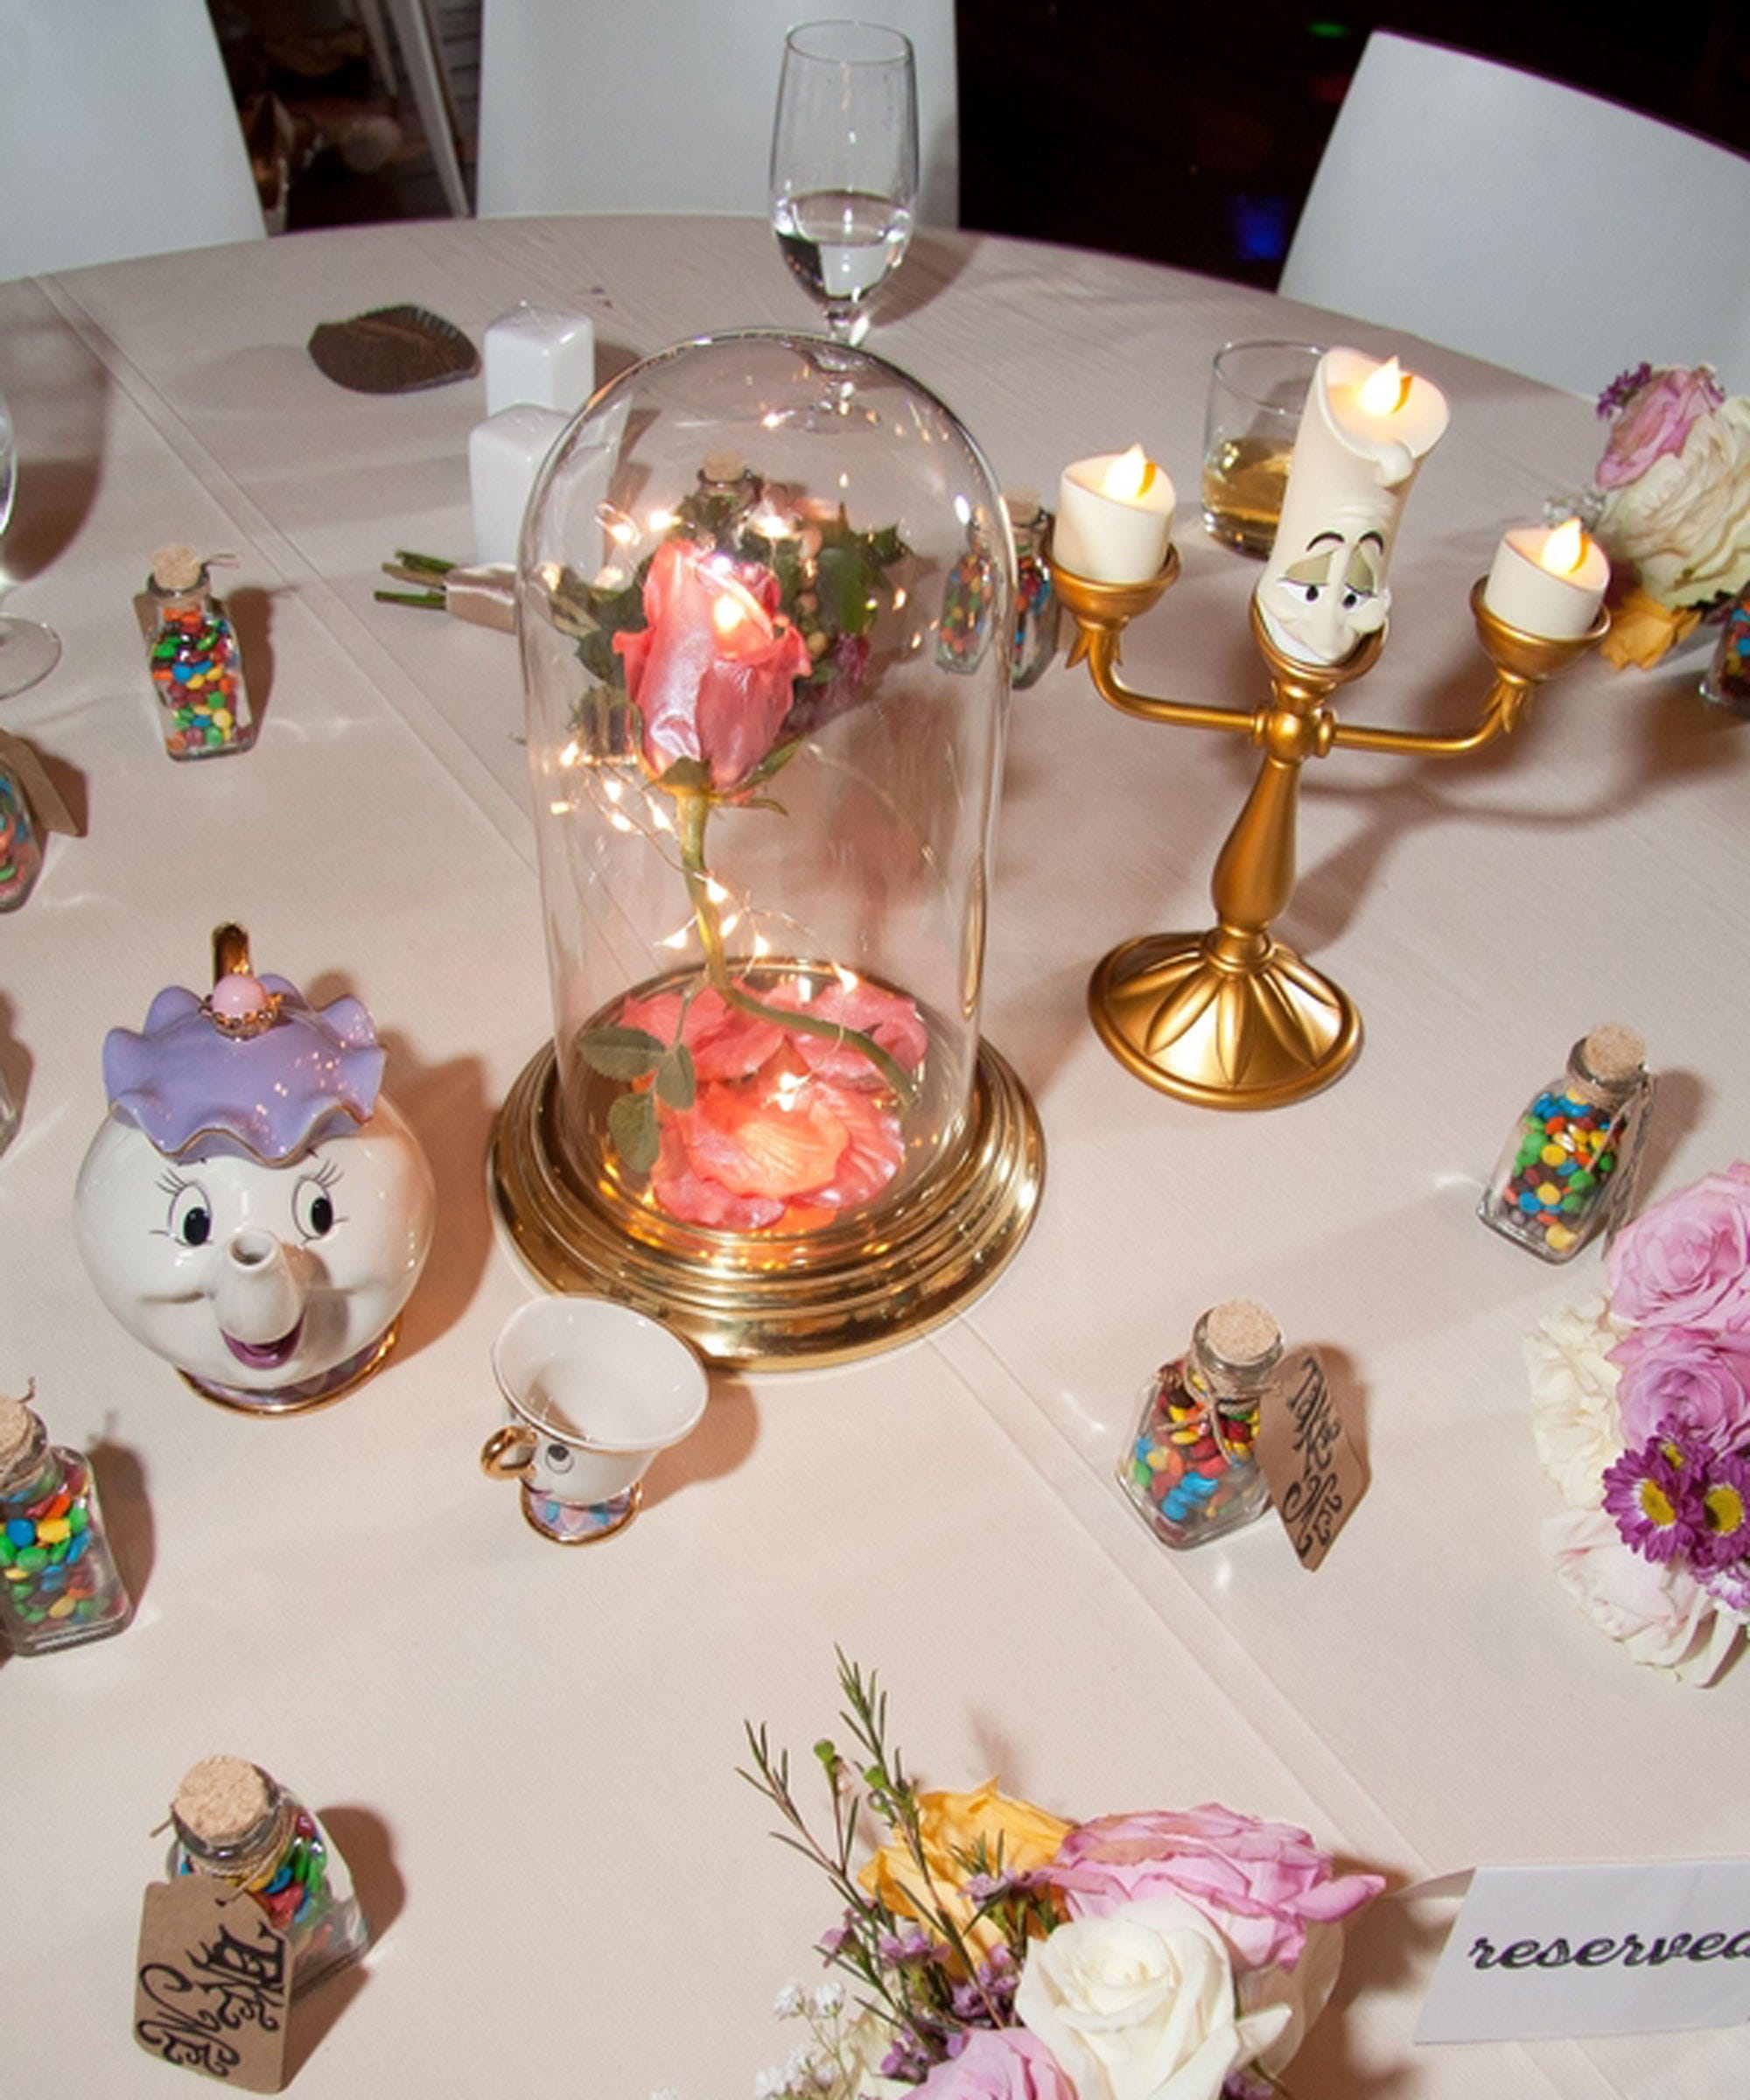 Diy Centerpieces For Weddings: Disney DIY Wedding Reception Centerpieces